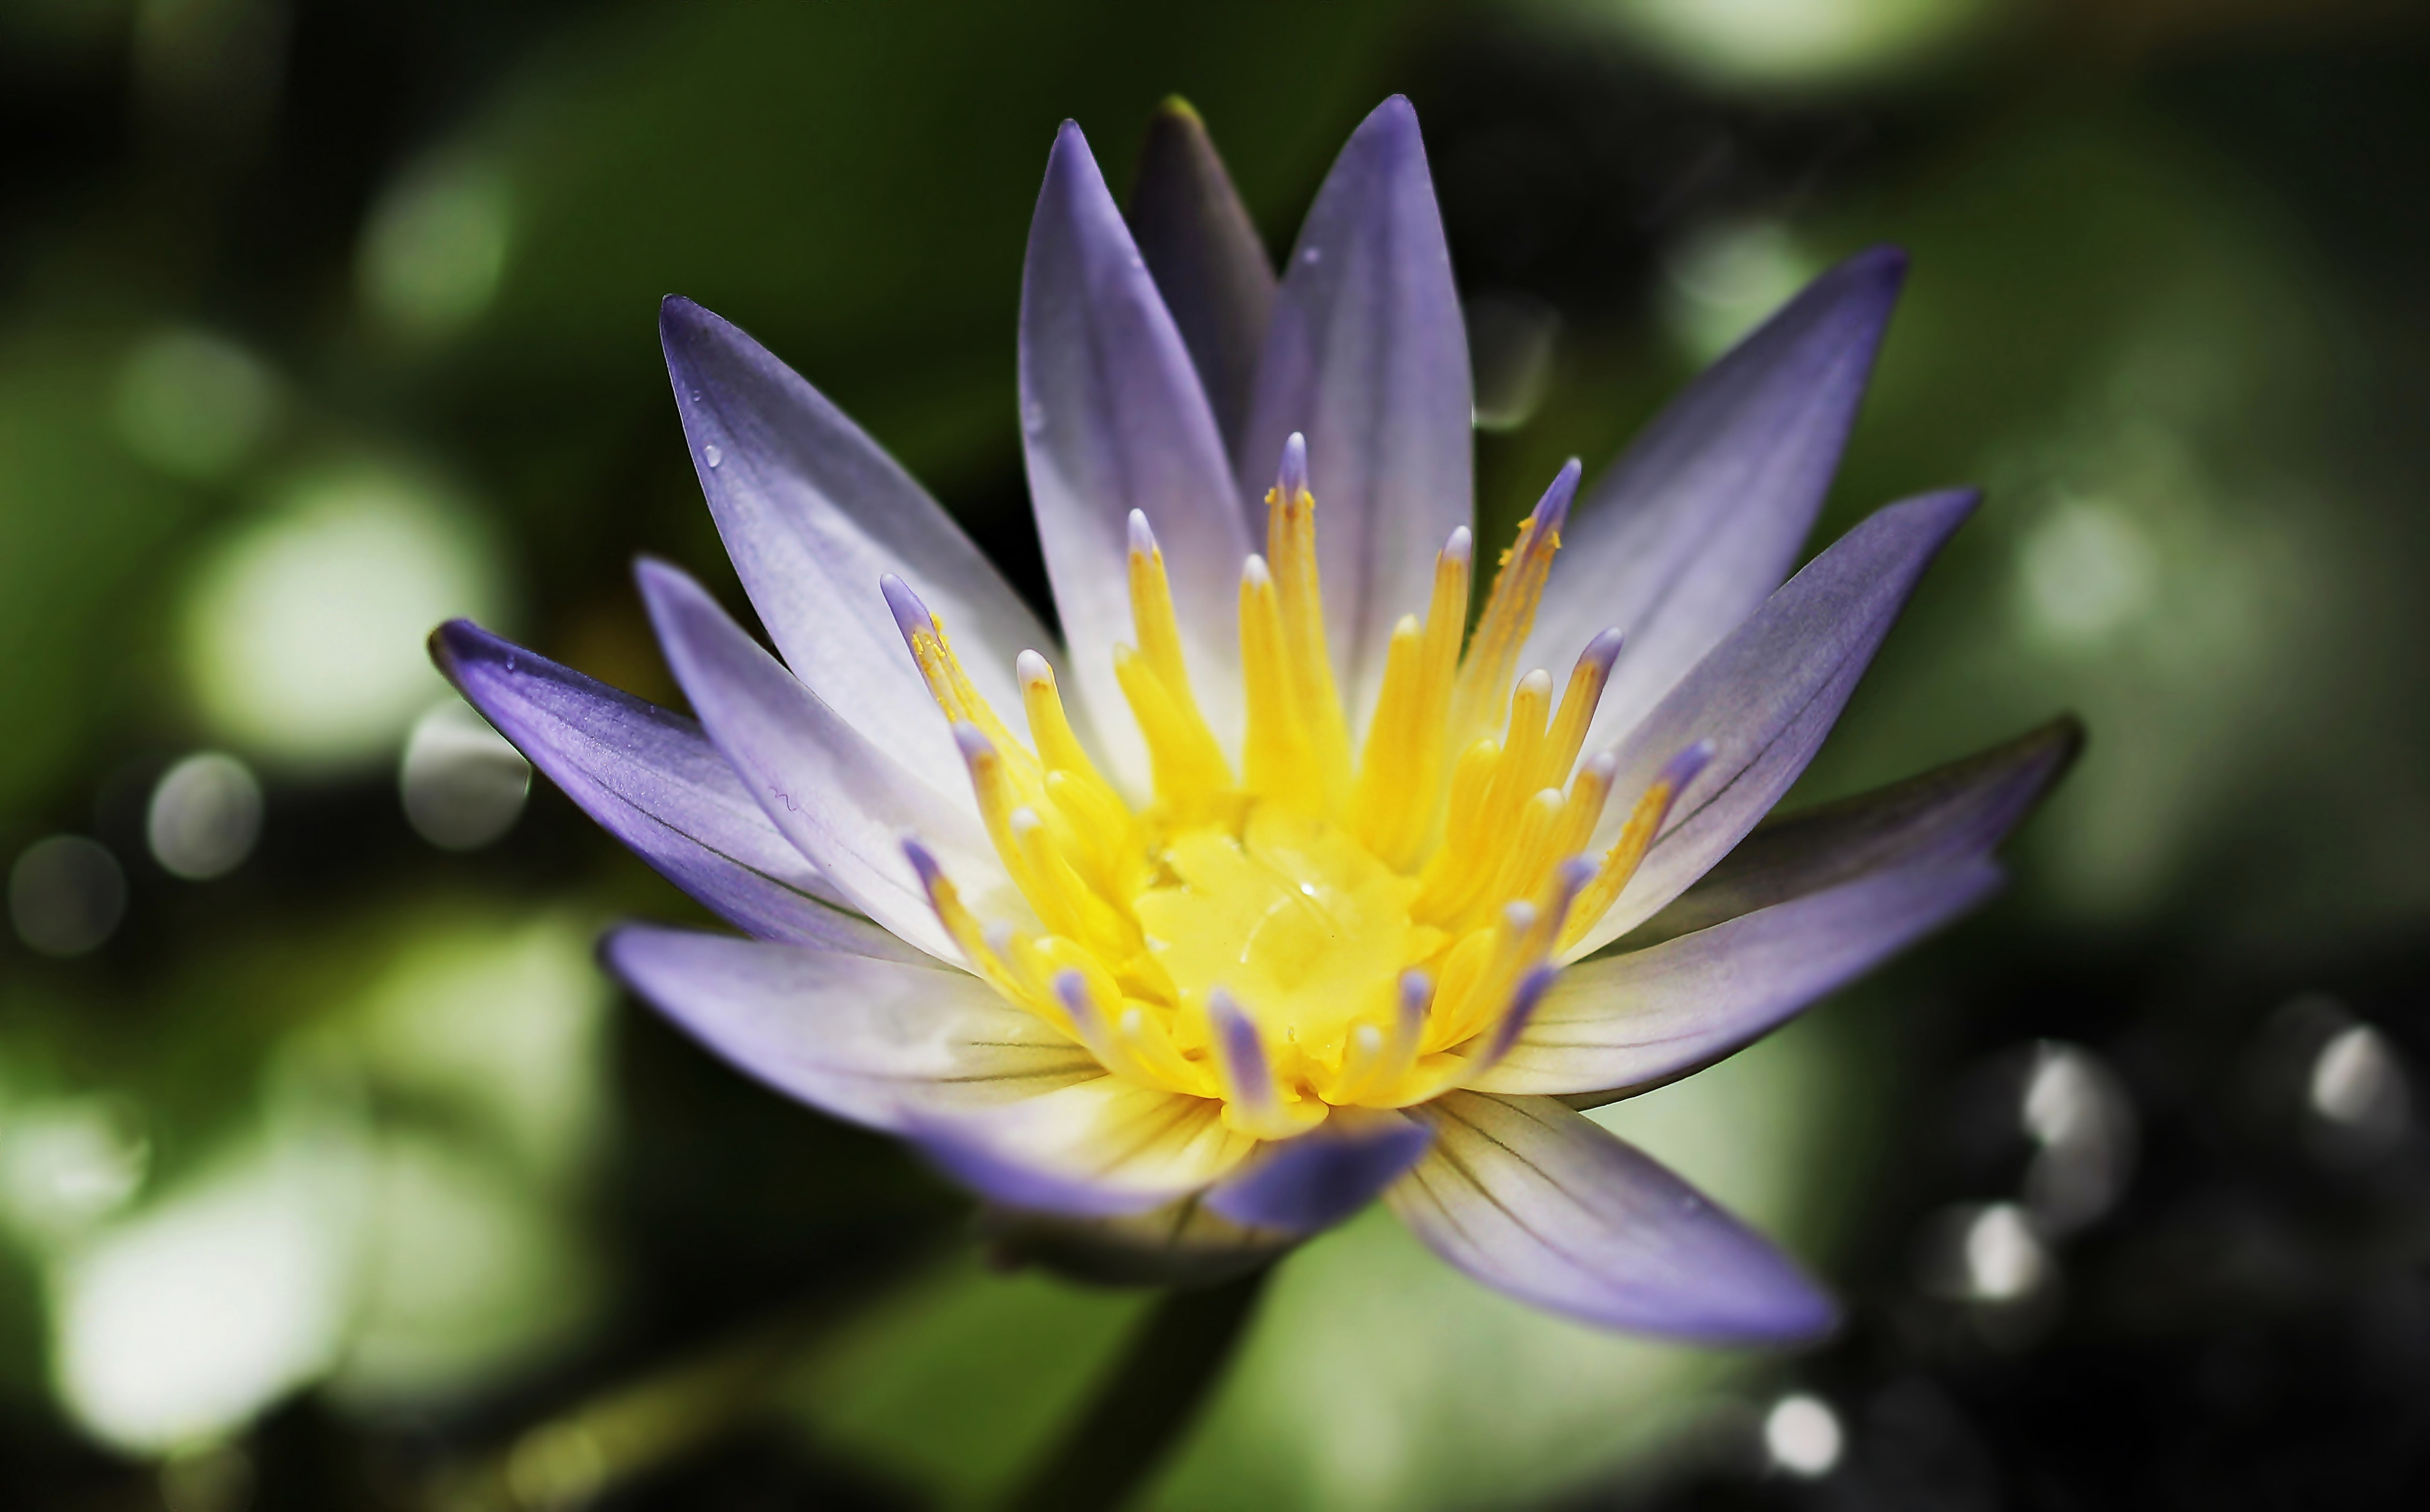 water lily 4k 5k wallpaper